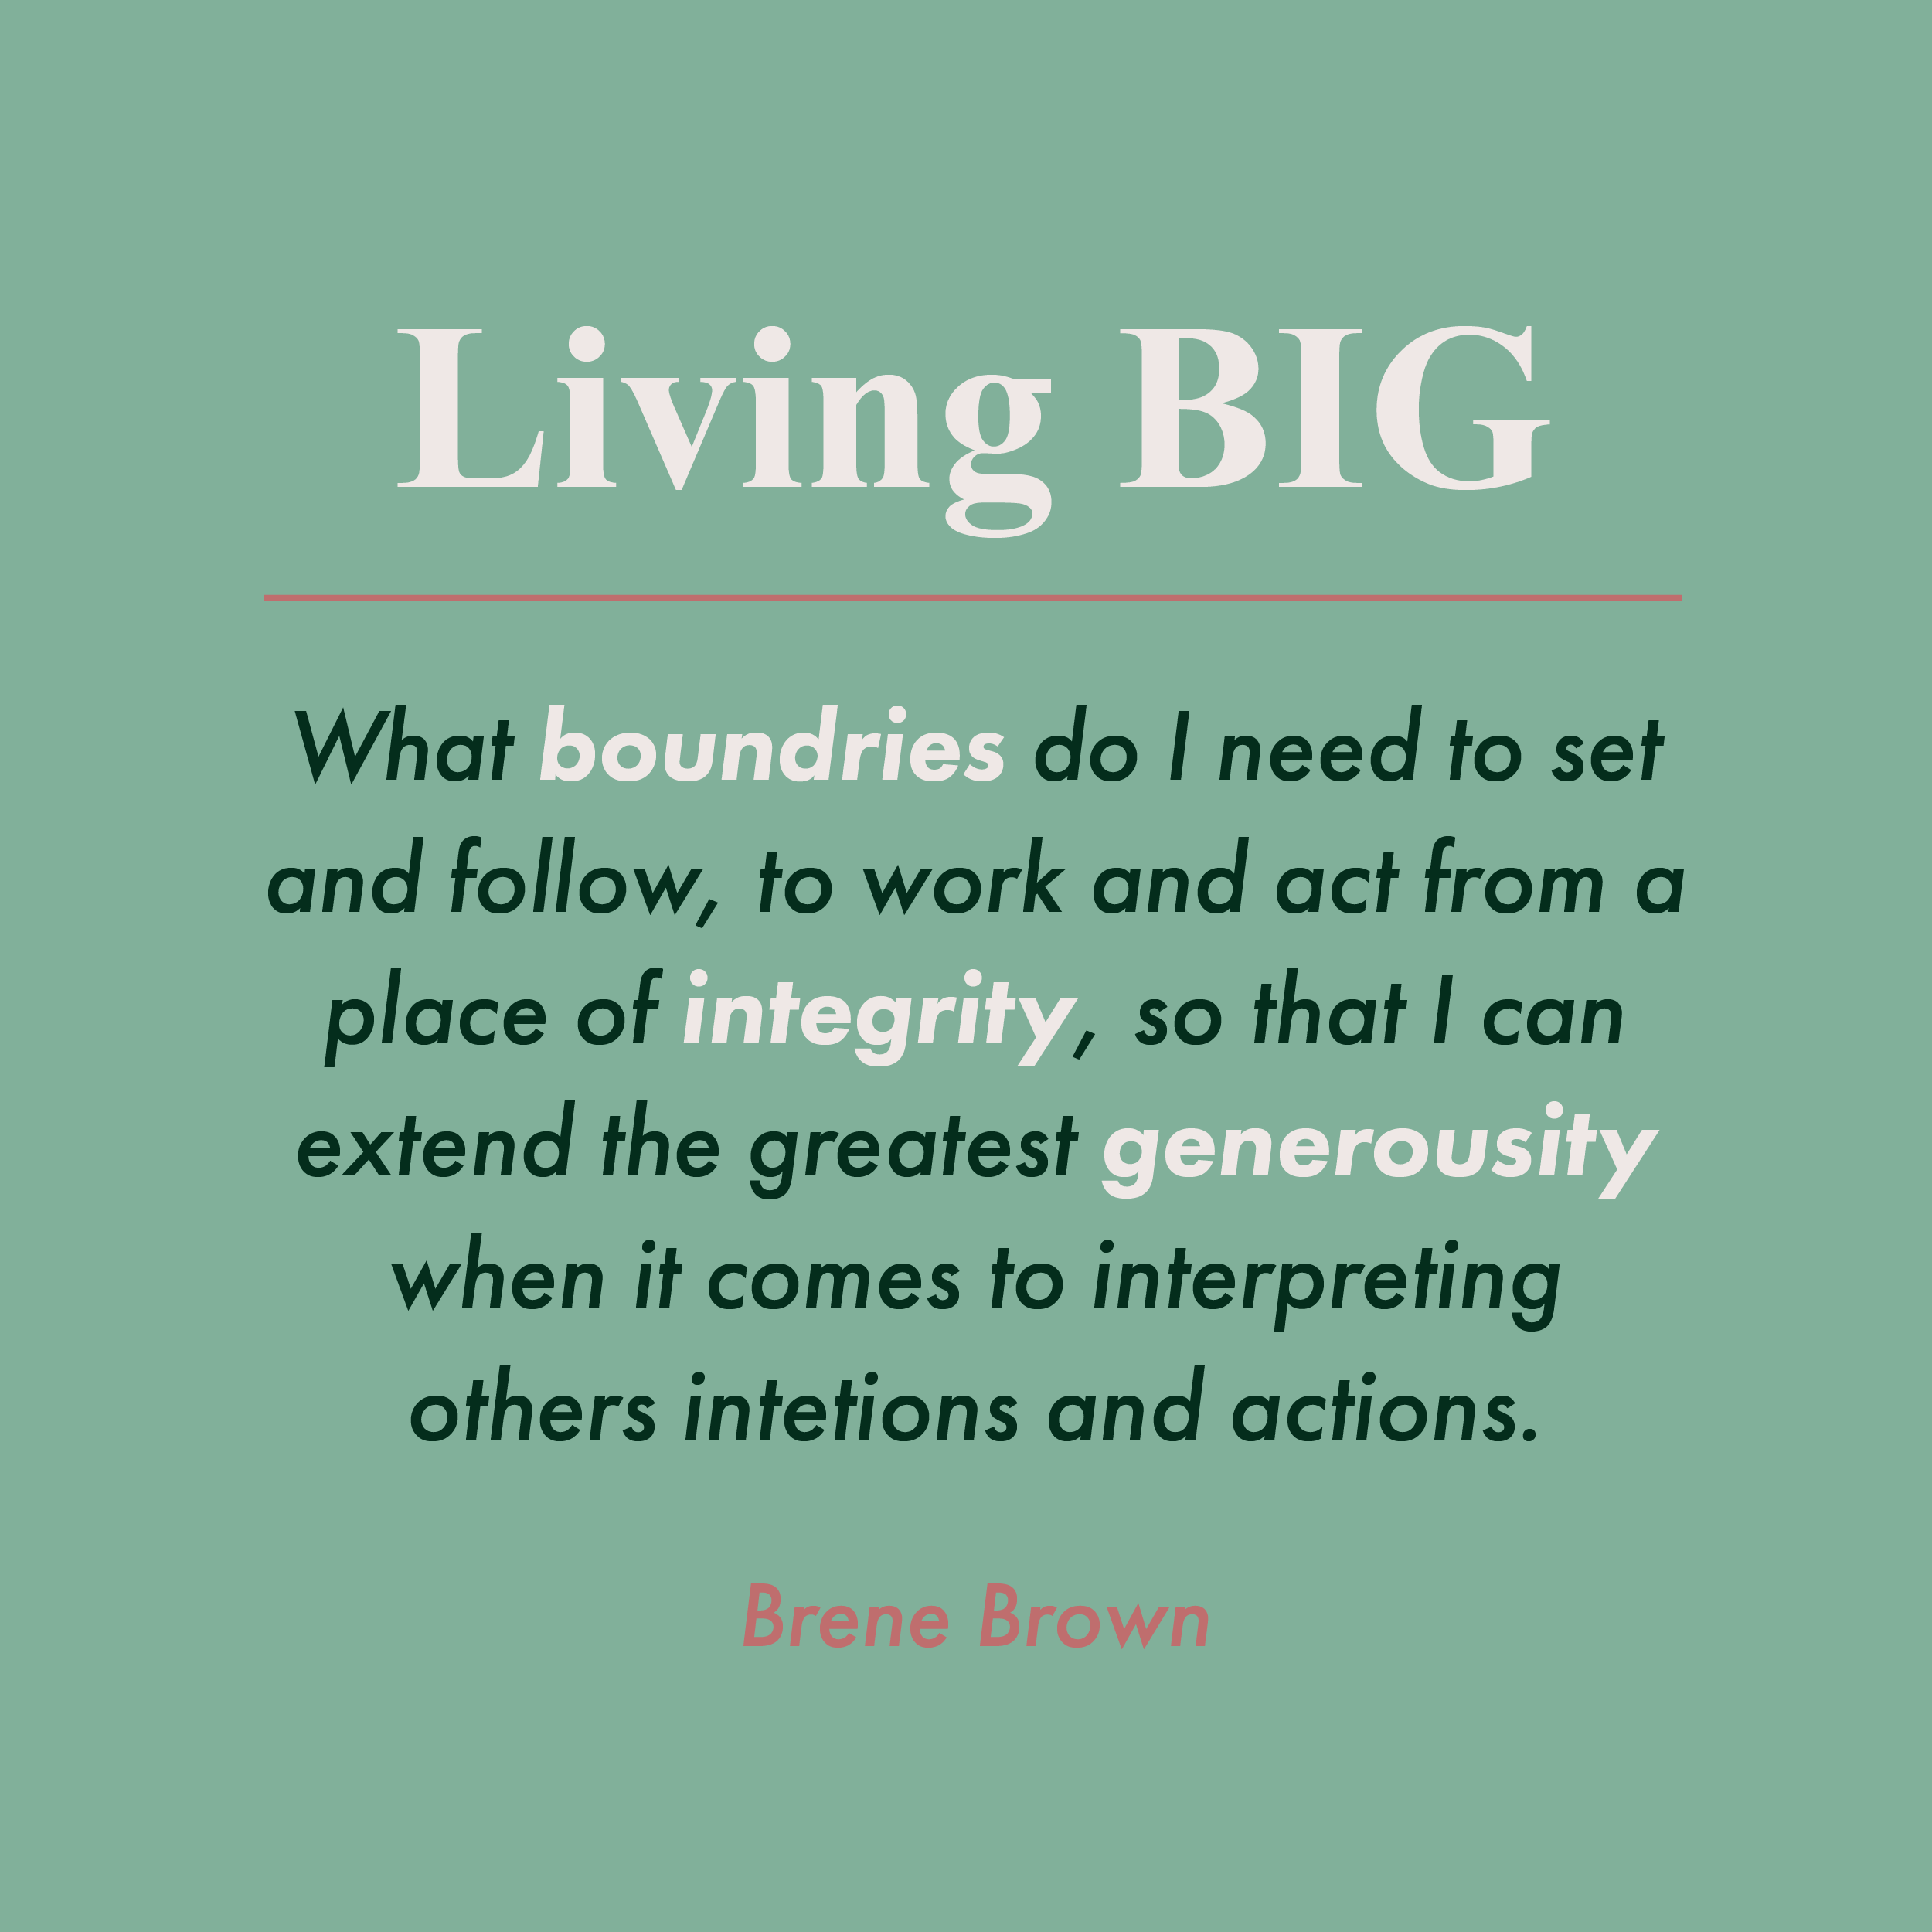 Brene Brown Continues To Amaze Me With Her Insightfulness